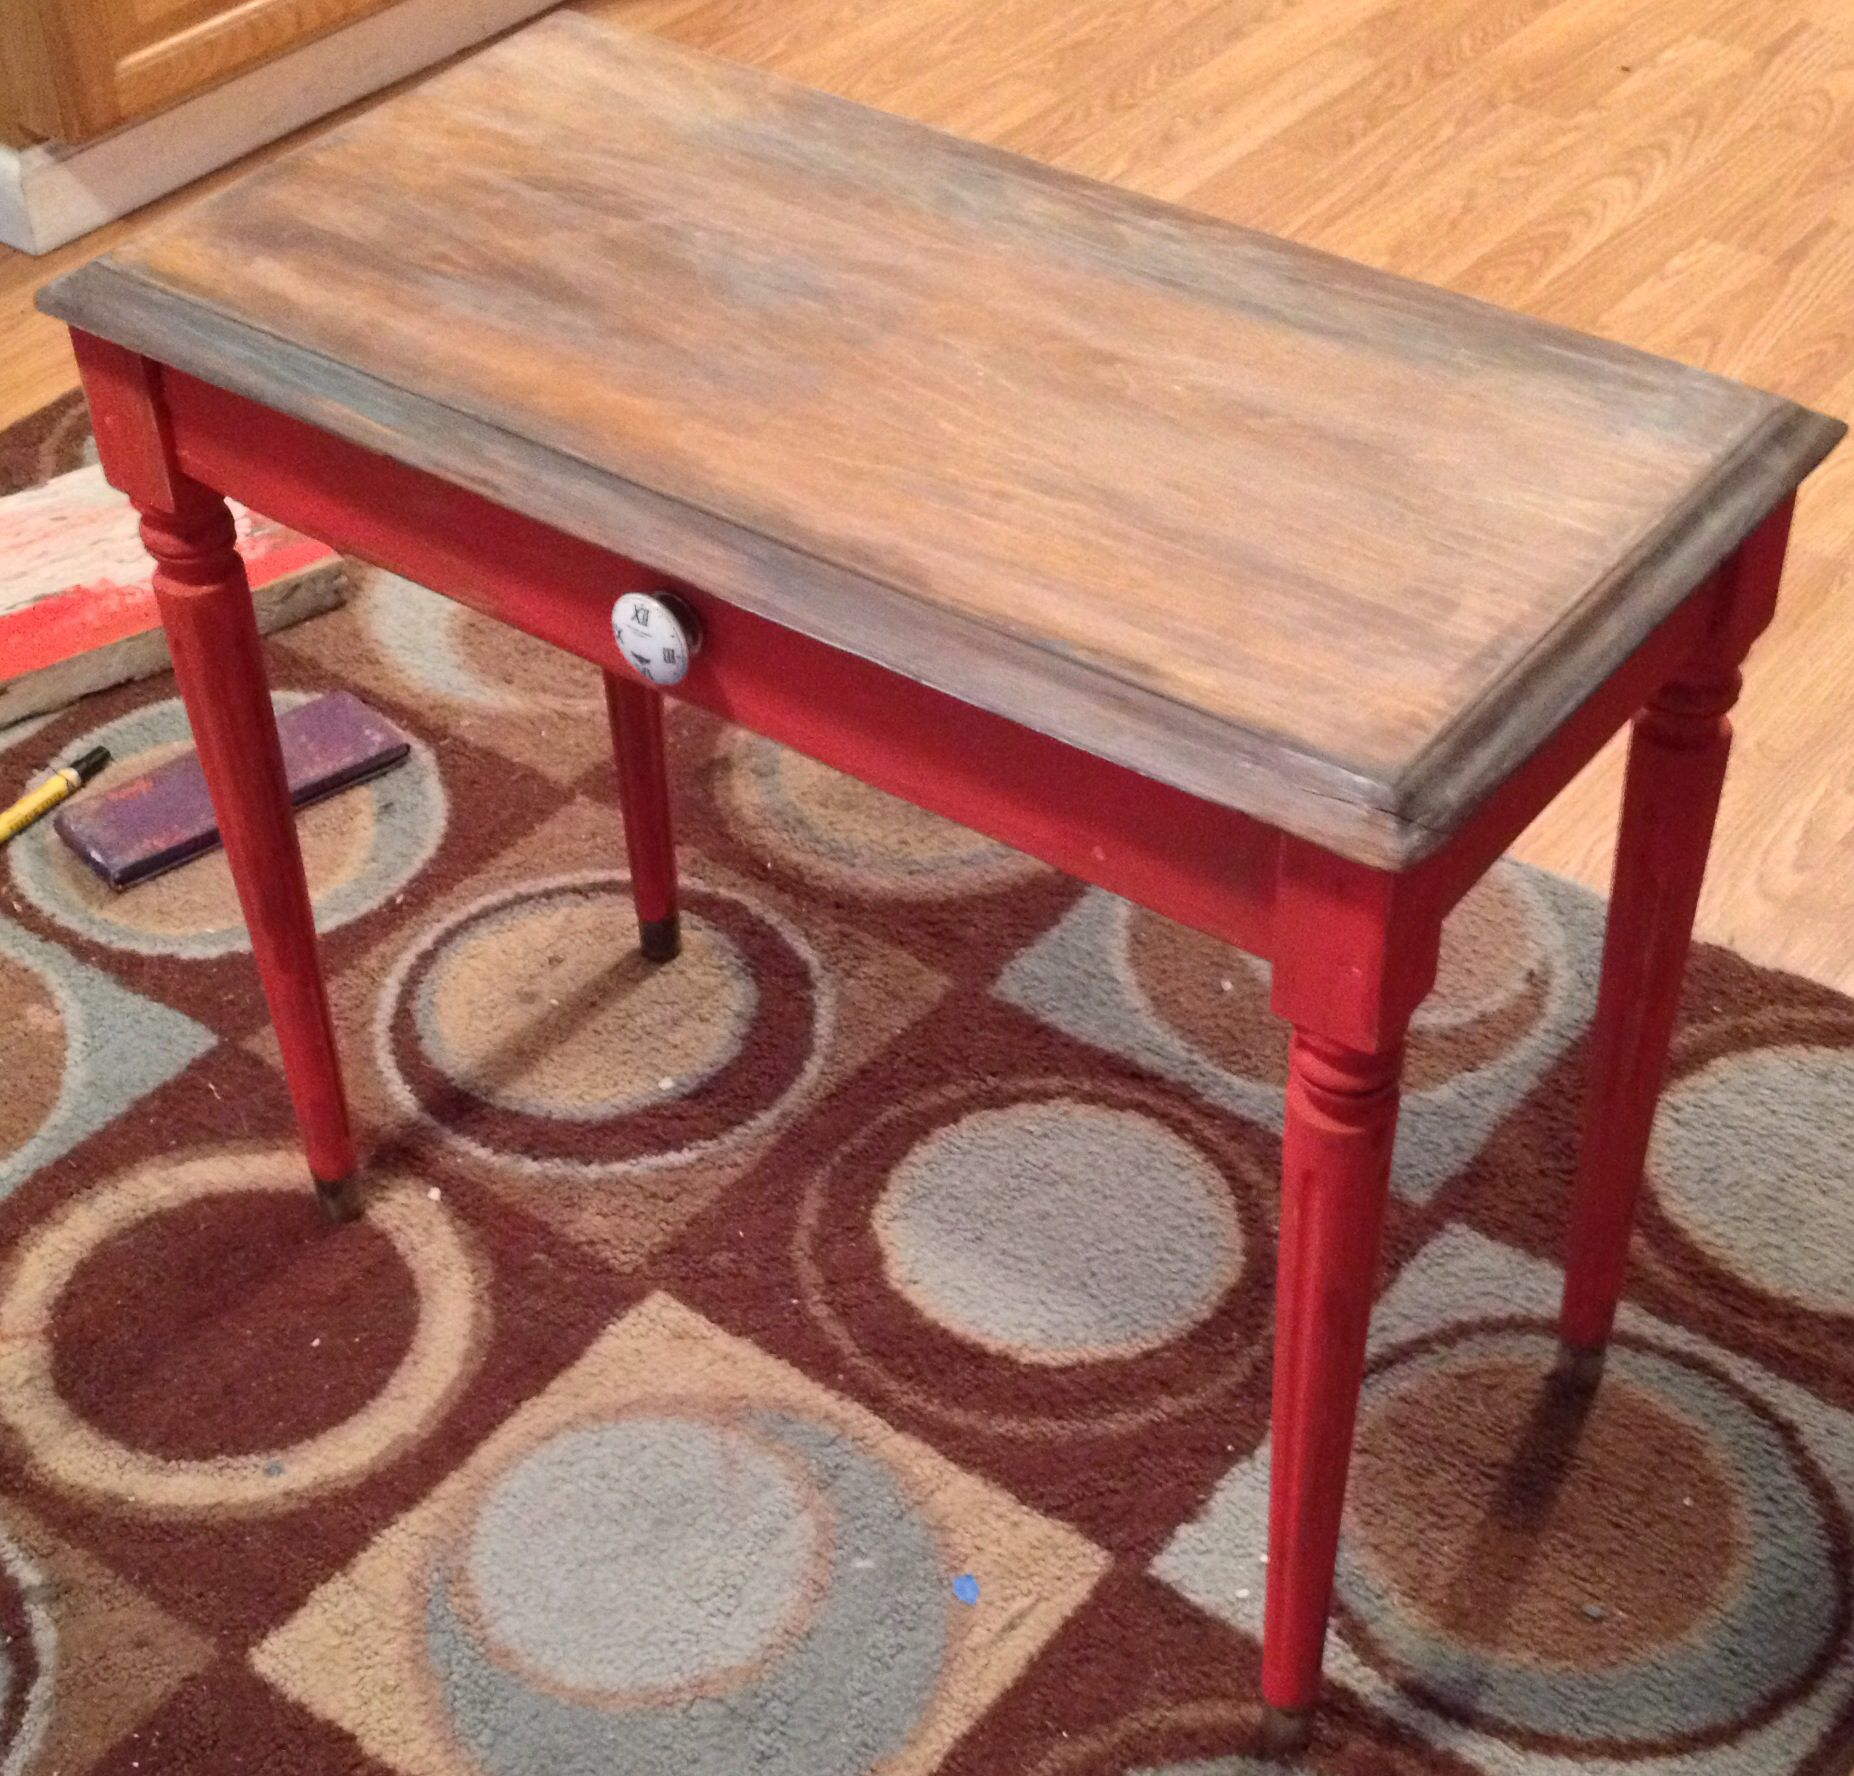 Vintage Piano Bench Httpadjustablepianobenchnet - Piano Benches - Pinterest -